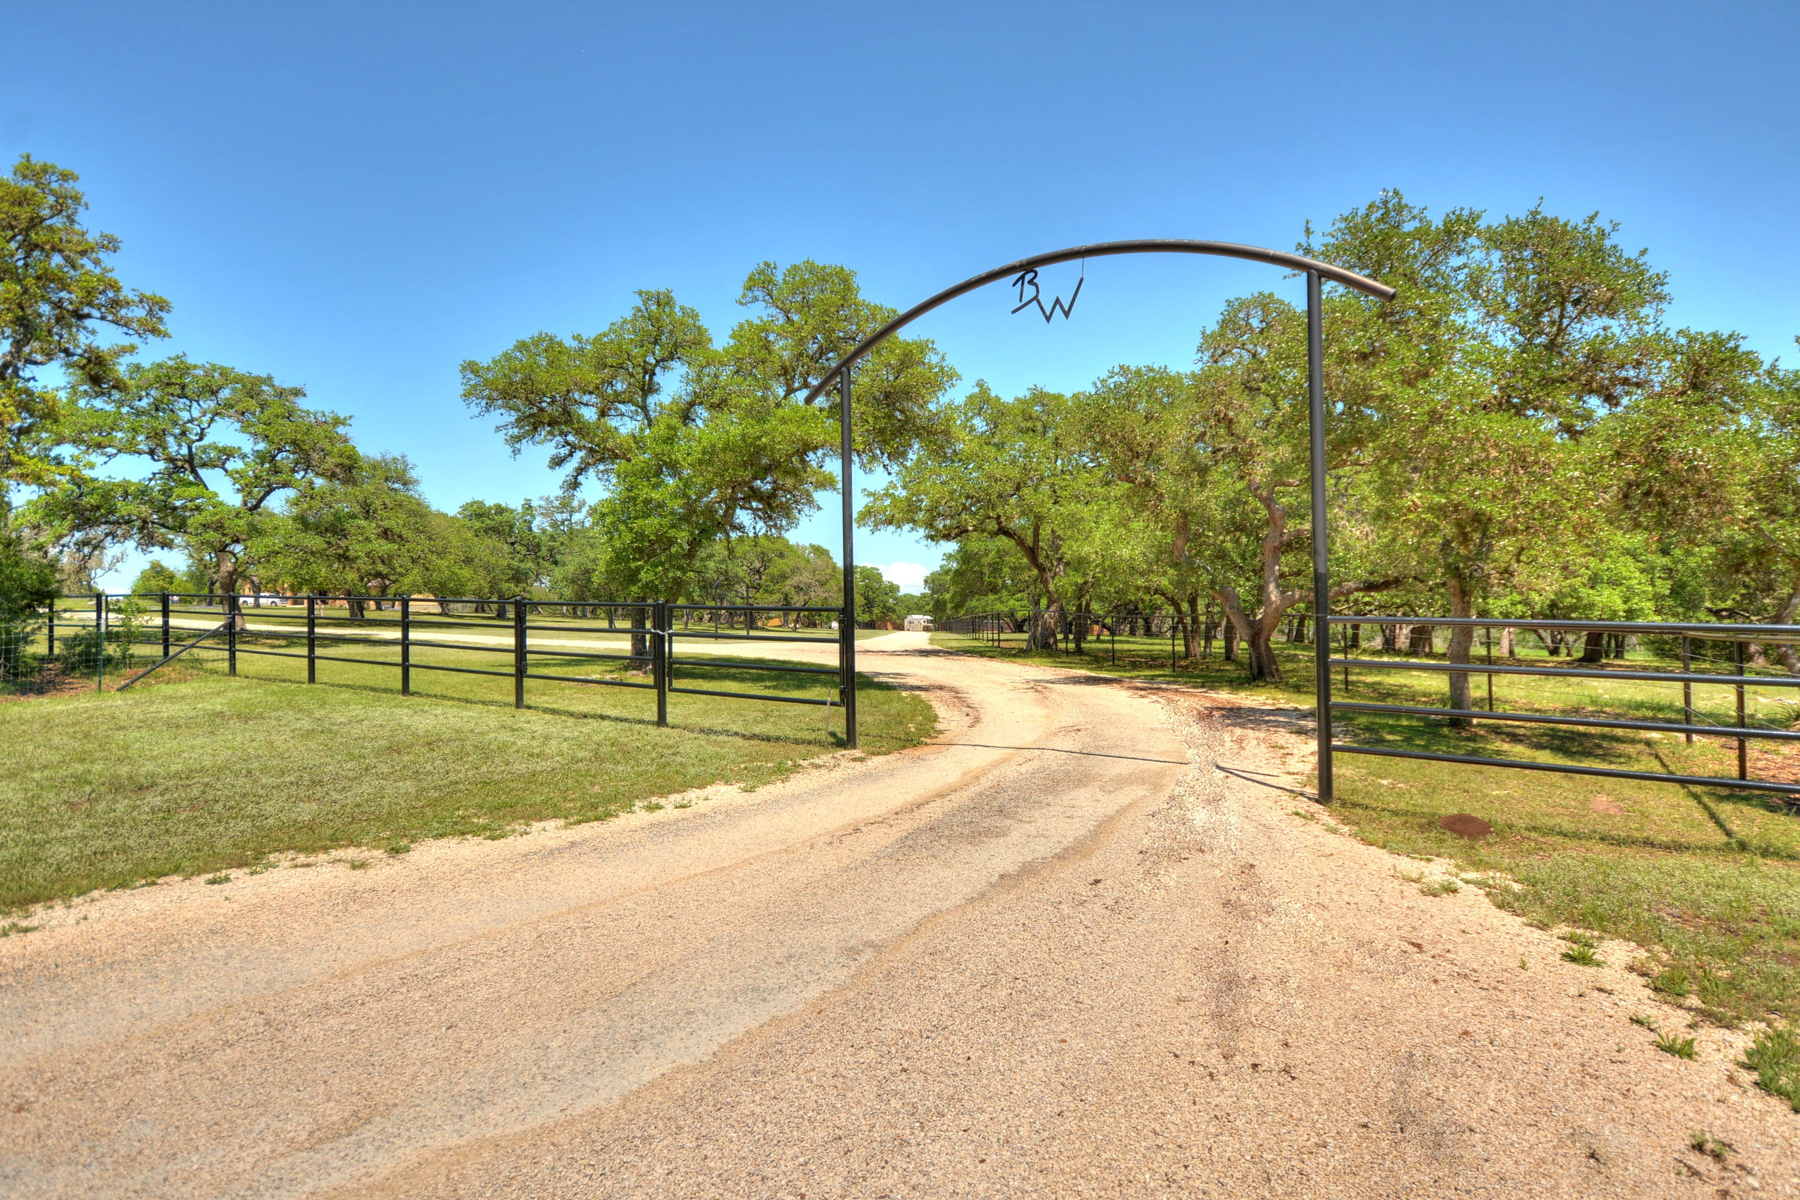 Additional photo for property listing at 15.84+/- Acre Premium Horse Property 47 Pfeiffer Rd Boerne, Texas 78006 United States